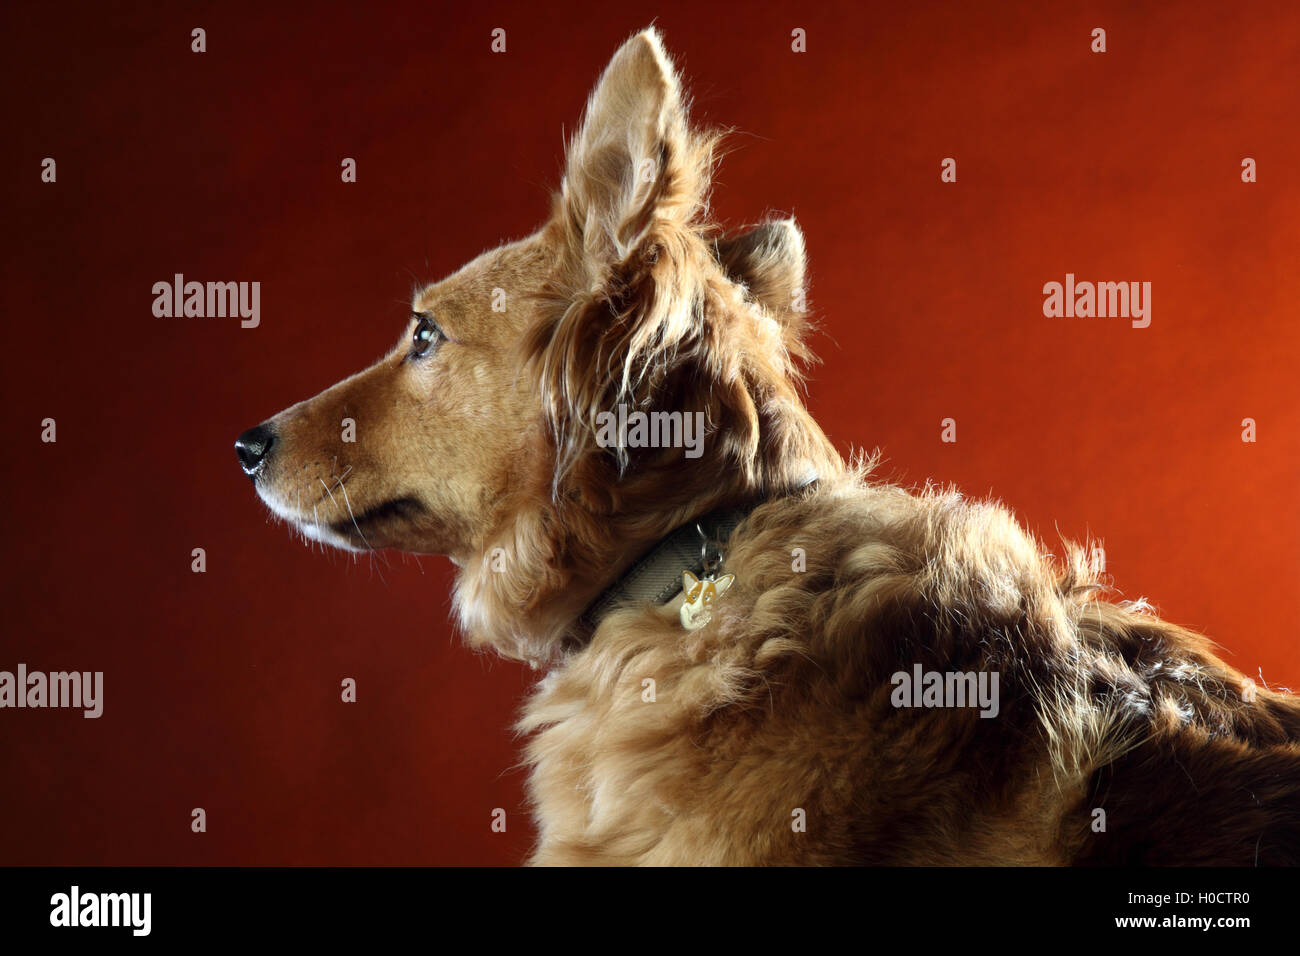 Gold And Copper : Italian mongrel dog hair from the gold and copper and black stock